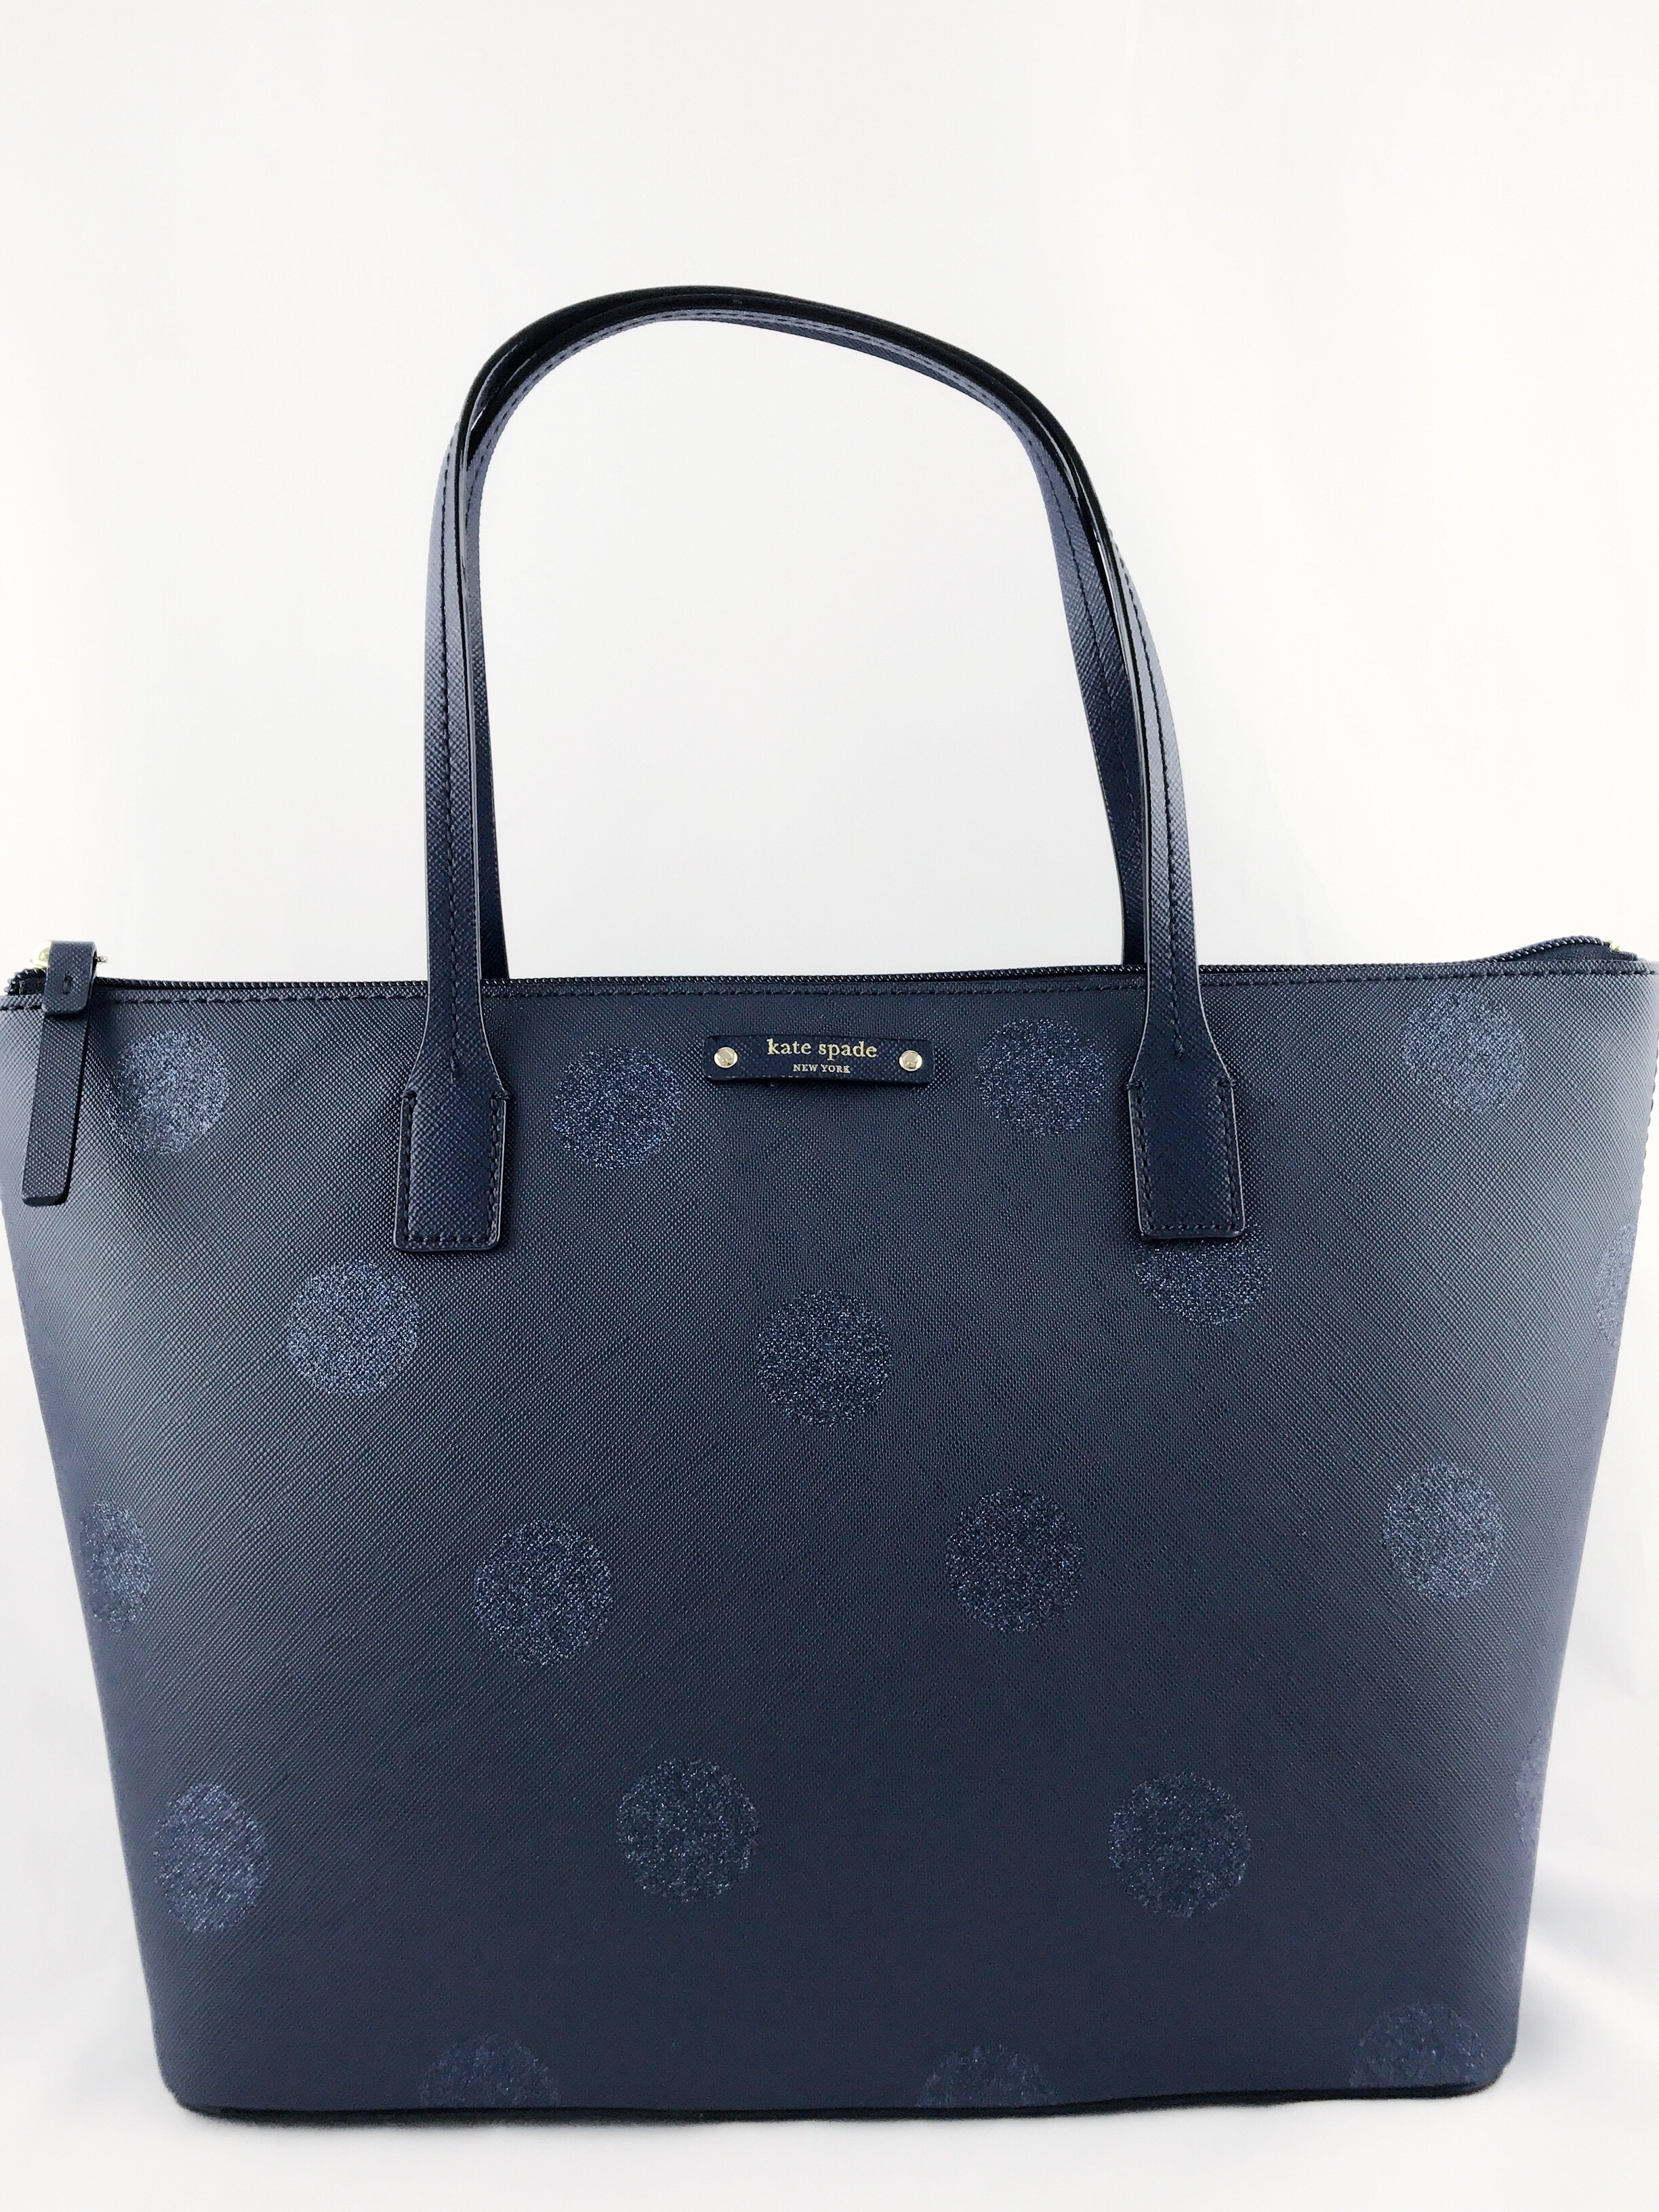 Kate spade haven lane hani small tote navy blue glitter polka dots kate spade haven lane hani small tote navy blue glitter polka dots handbag walmart junglespirit Gallery